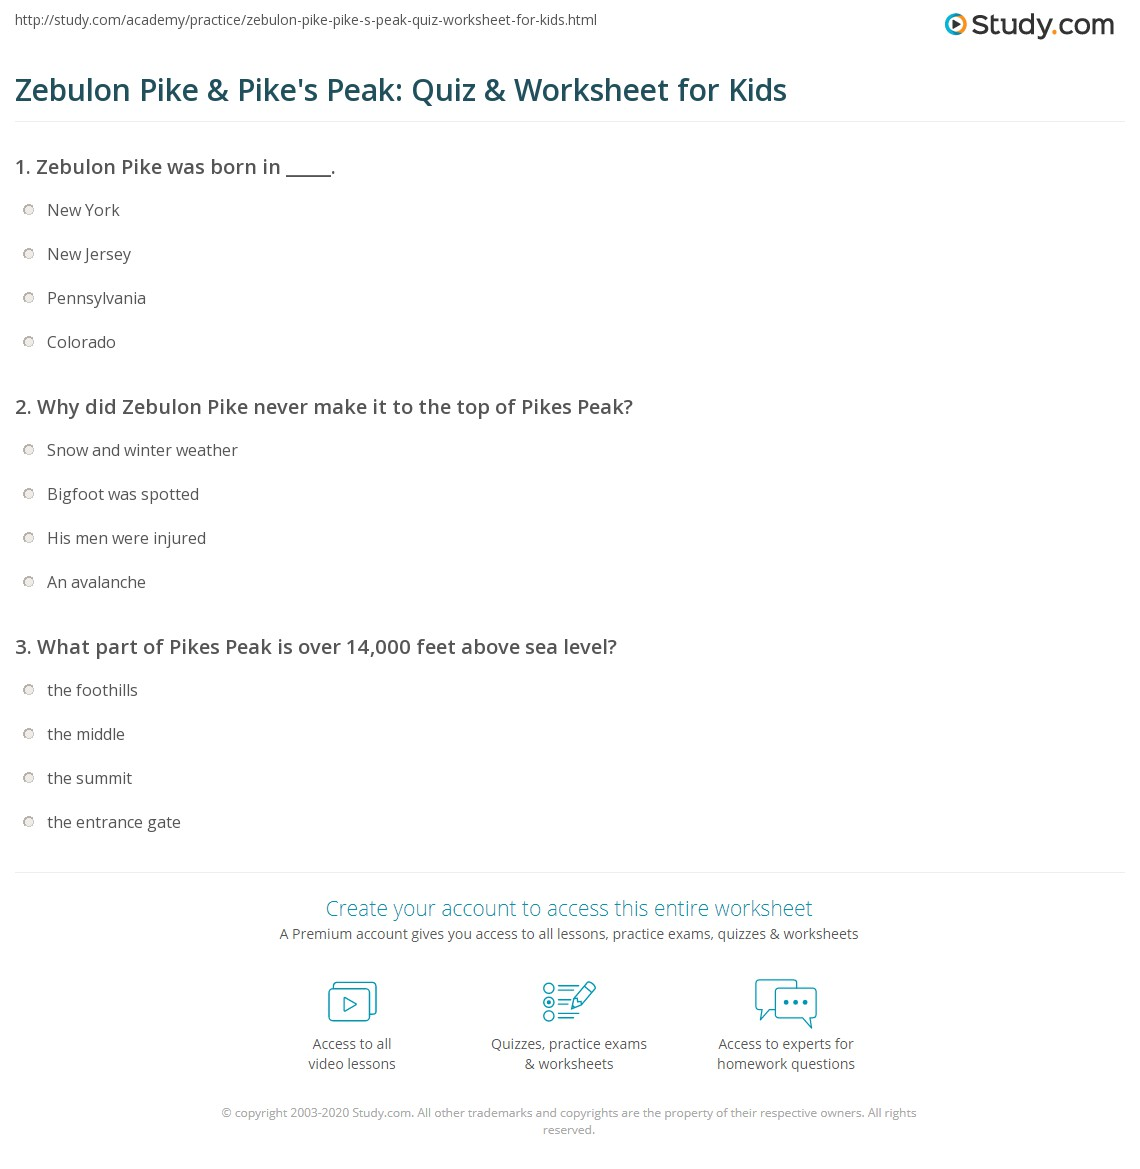 Zebulon Pike Amp Pike S Peak Quiz Amp Worksheet For Kids